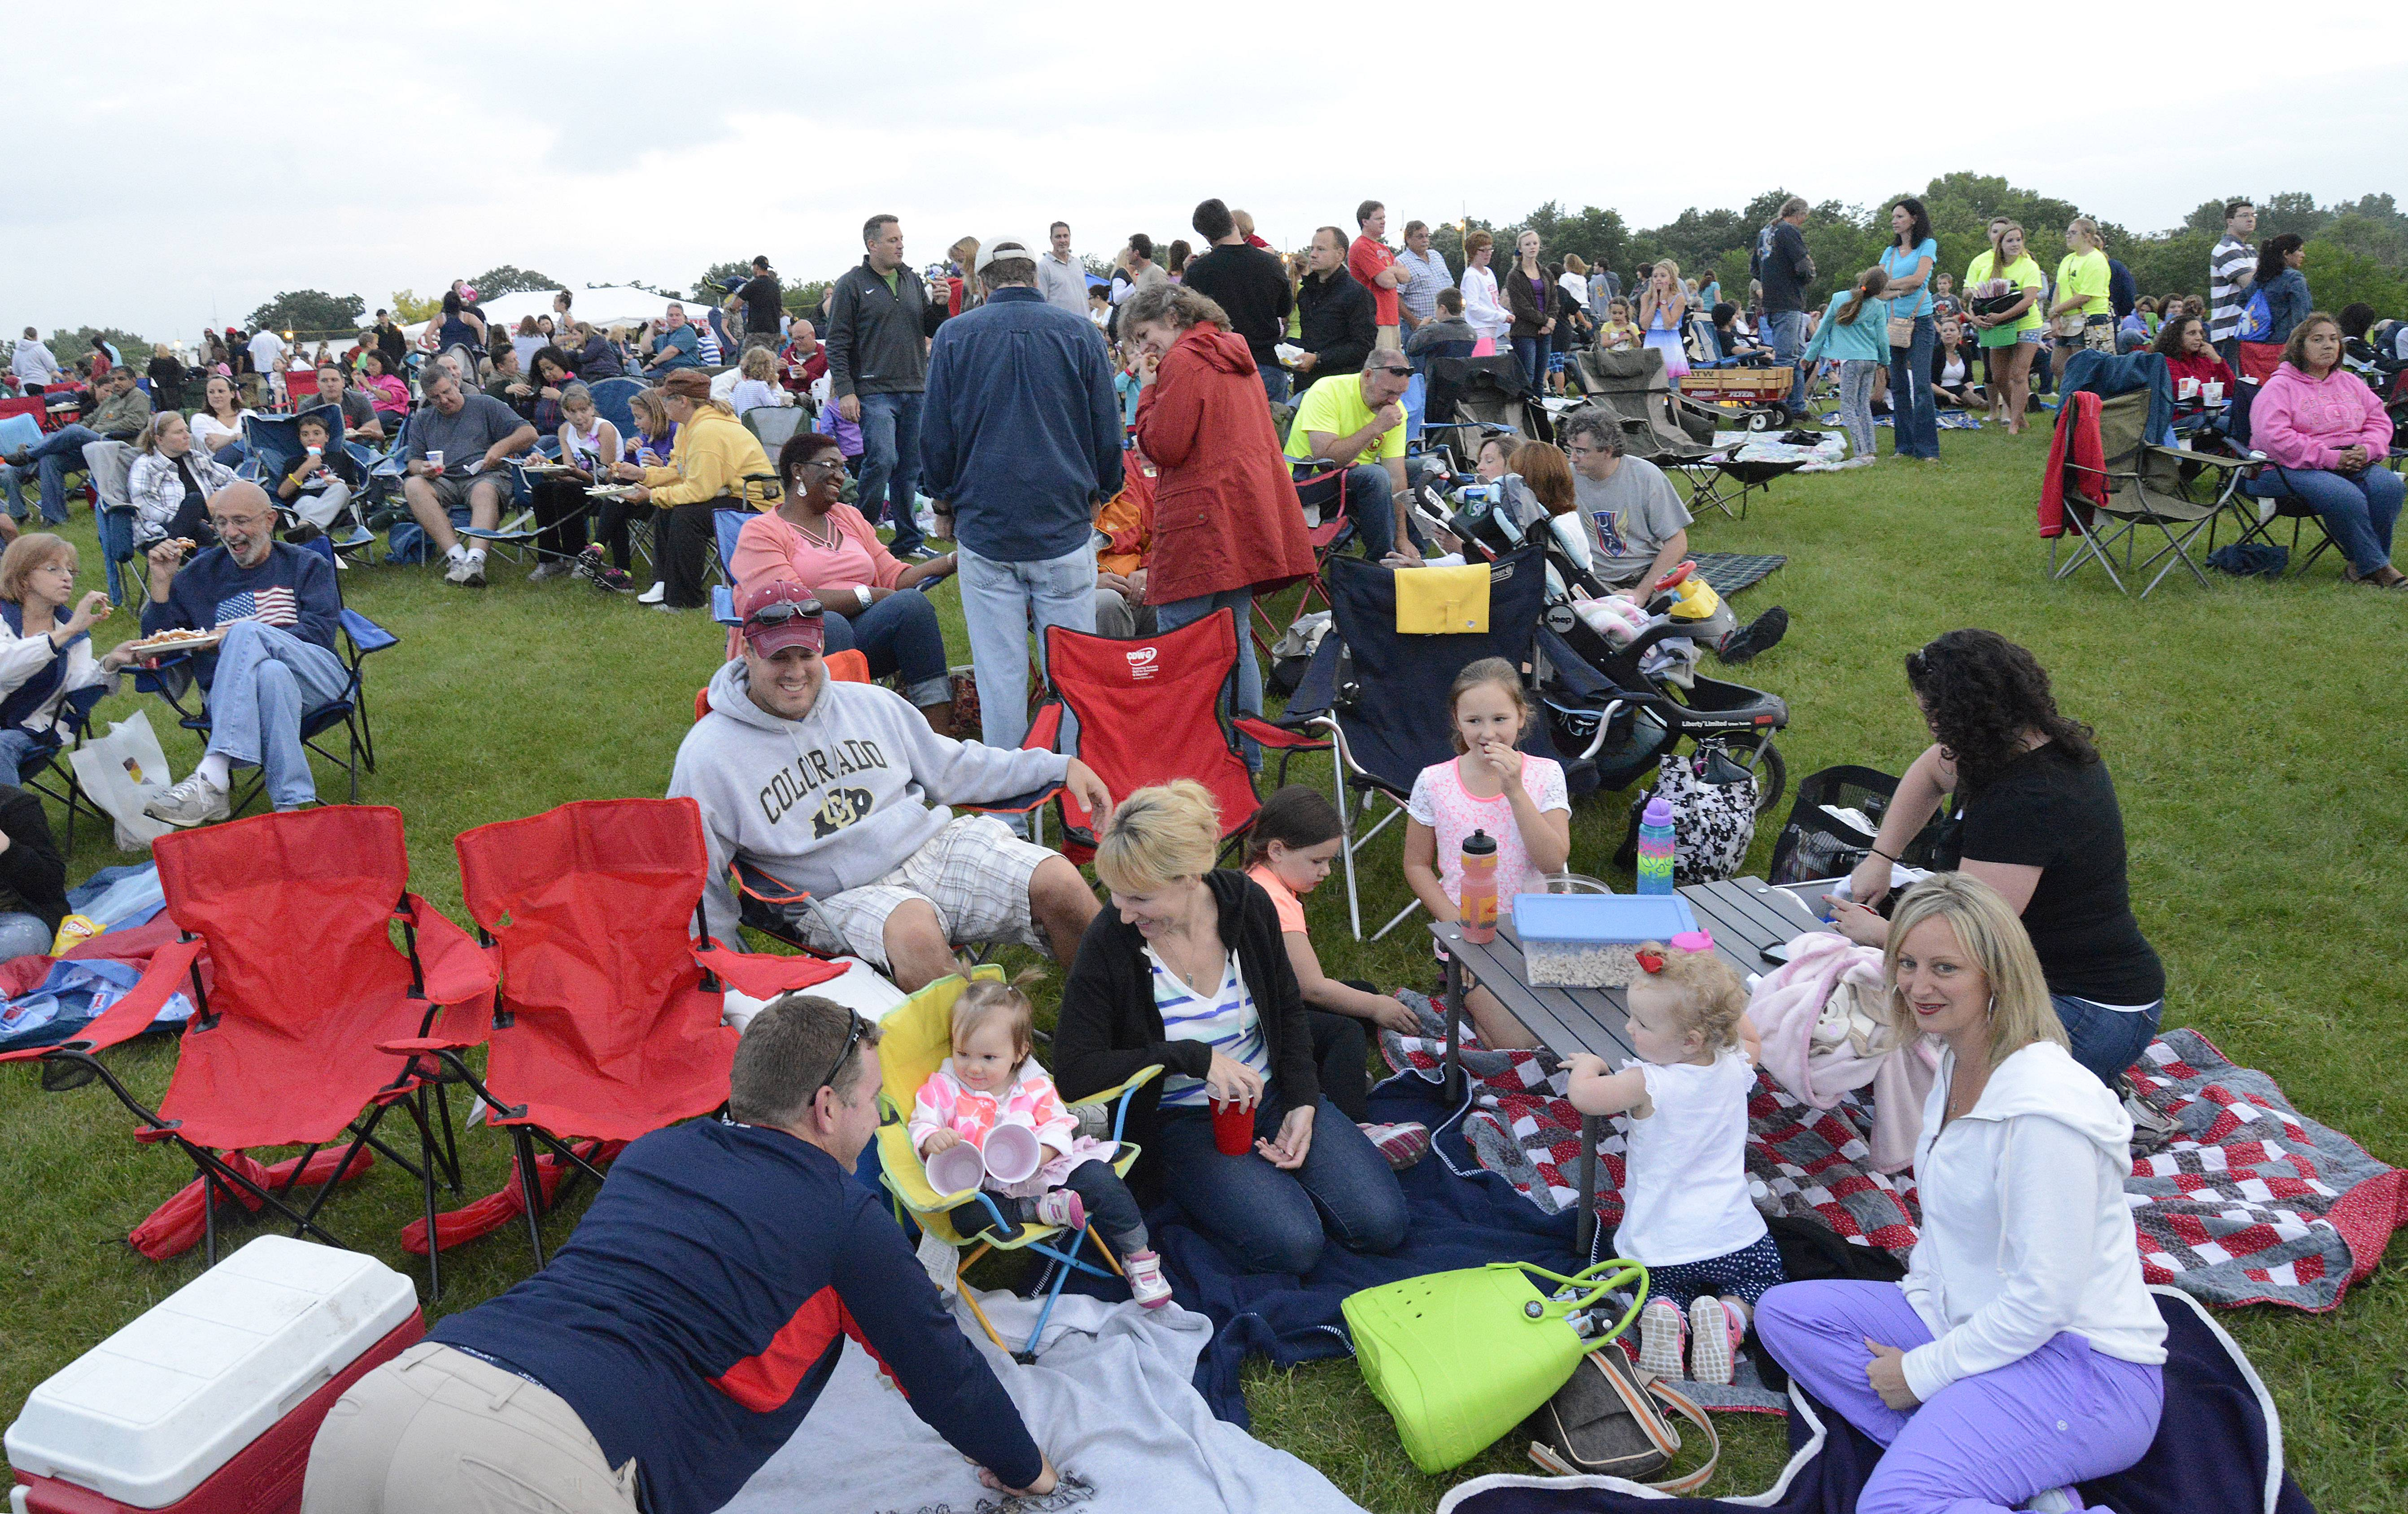 The Johnson and Dumele families of Cary and the Barnum family of Barrington camp out listening to music while they wait for the fireworks at Cary's Summer Celebration in Lions Park -- which is always held on July 3.